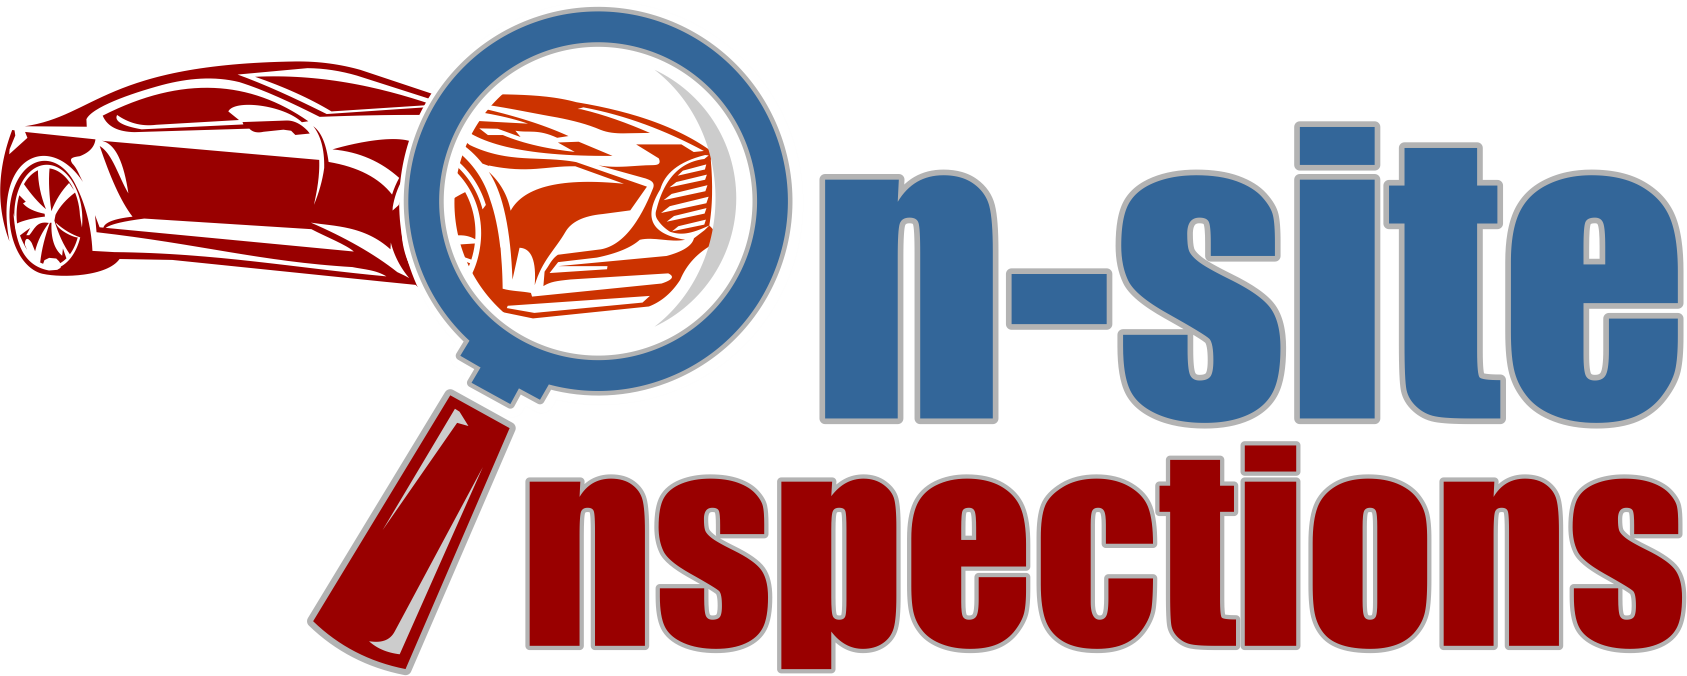 On-Site Used Car Inspections - Don't Buy a Wreck, On-Site Inspect